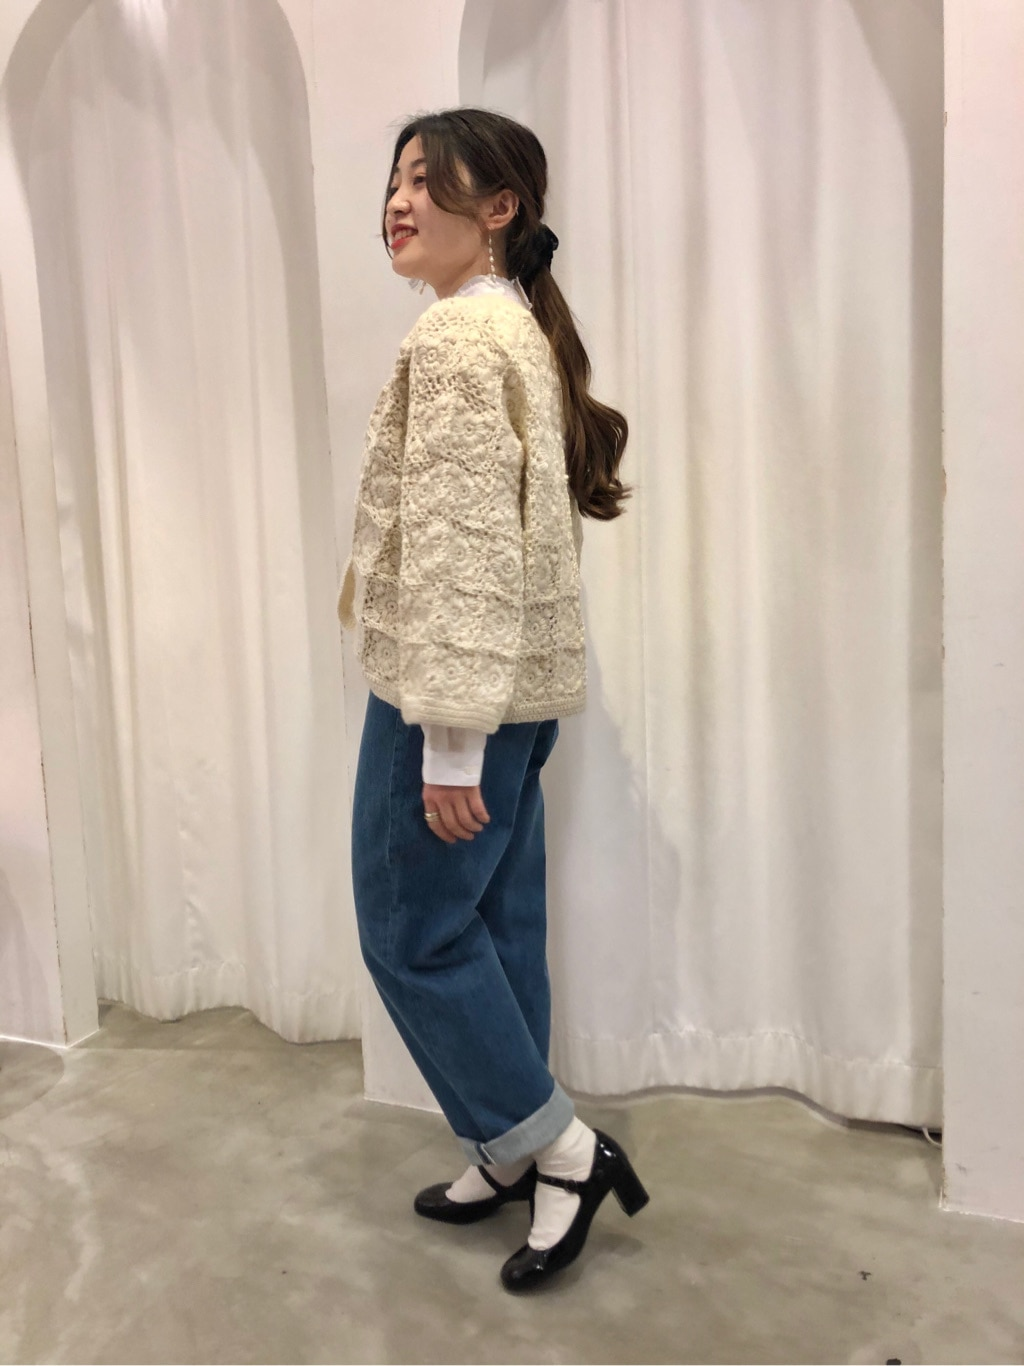 Dot and Stripes CHILD WOMAN ラフォーレ原宿 身長:153cm 2020.11.25